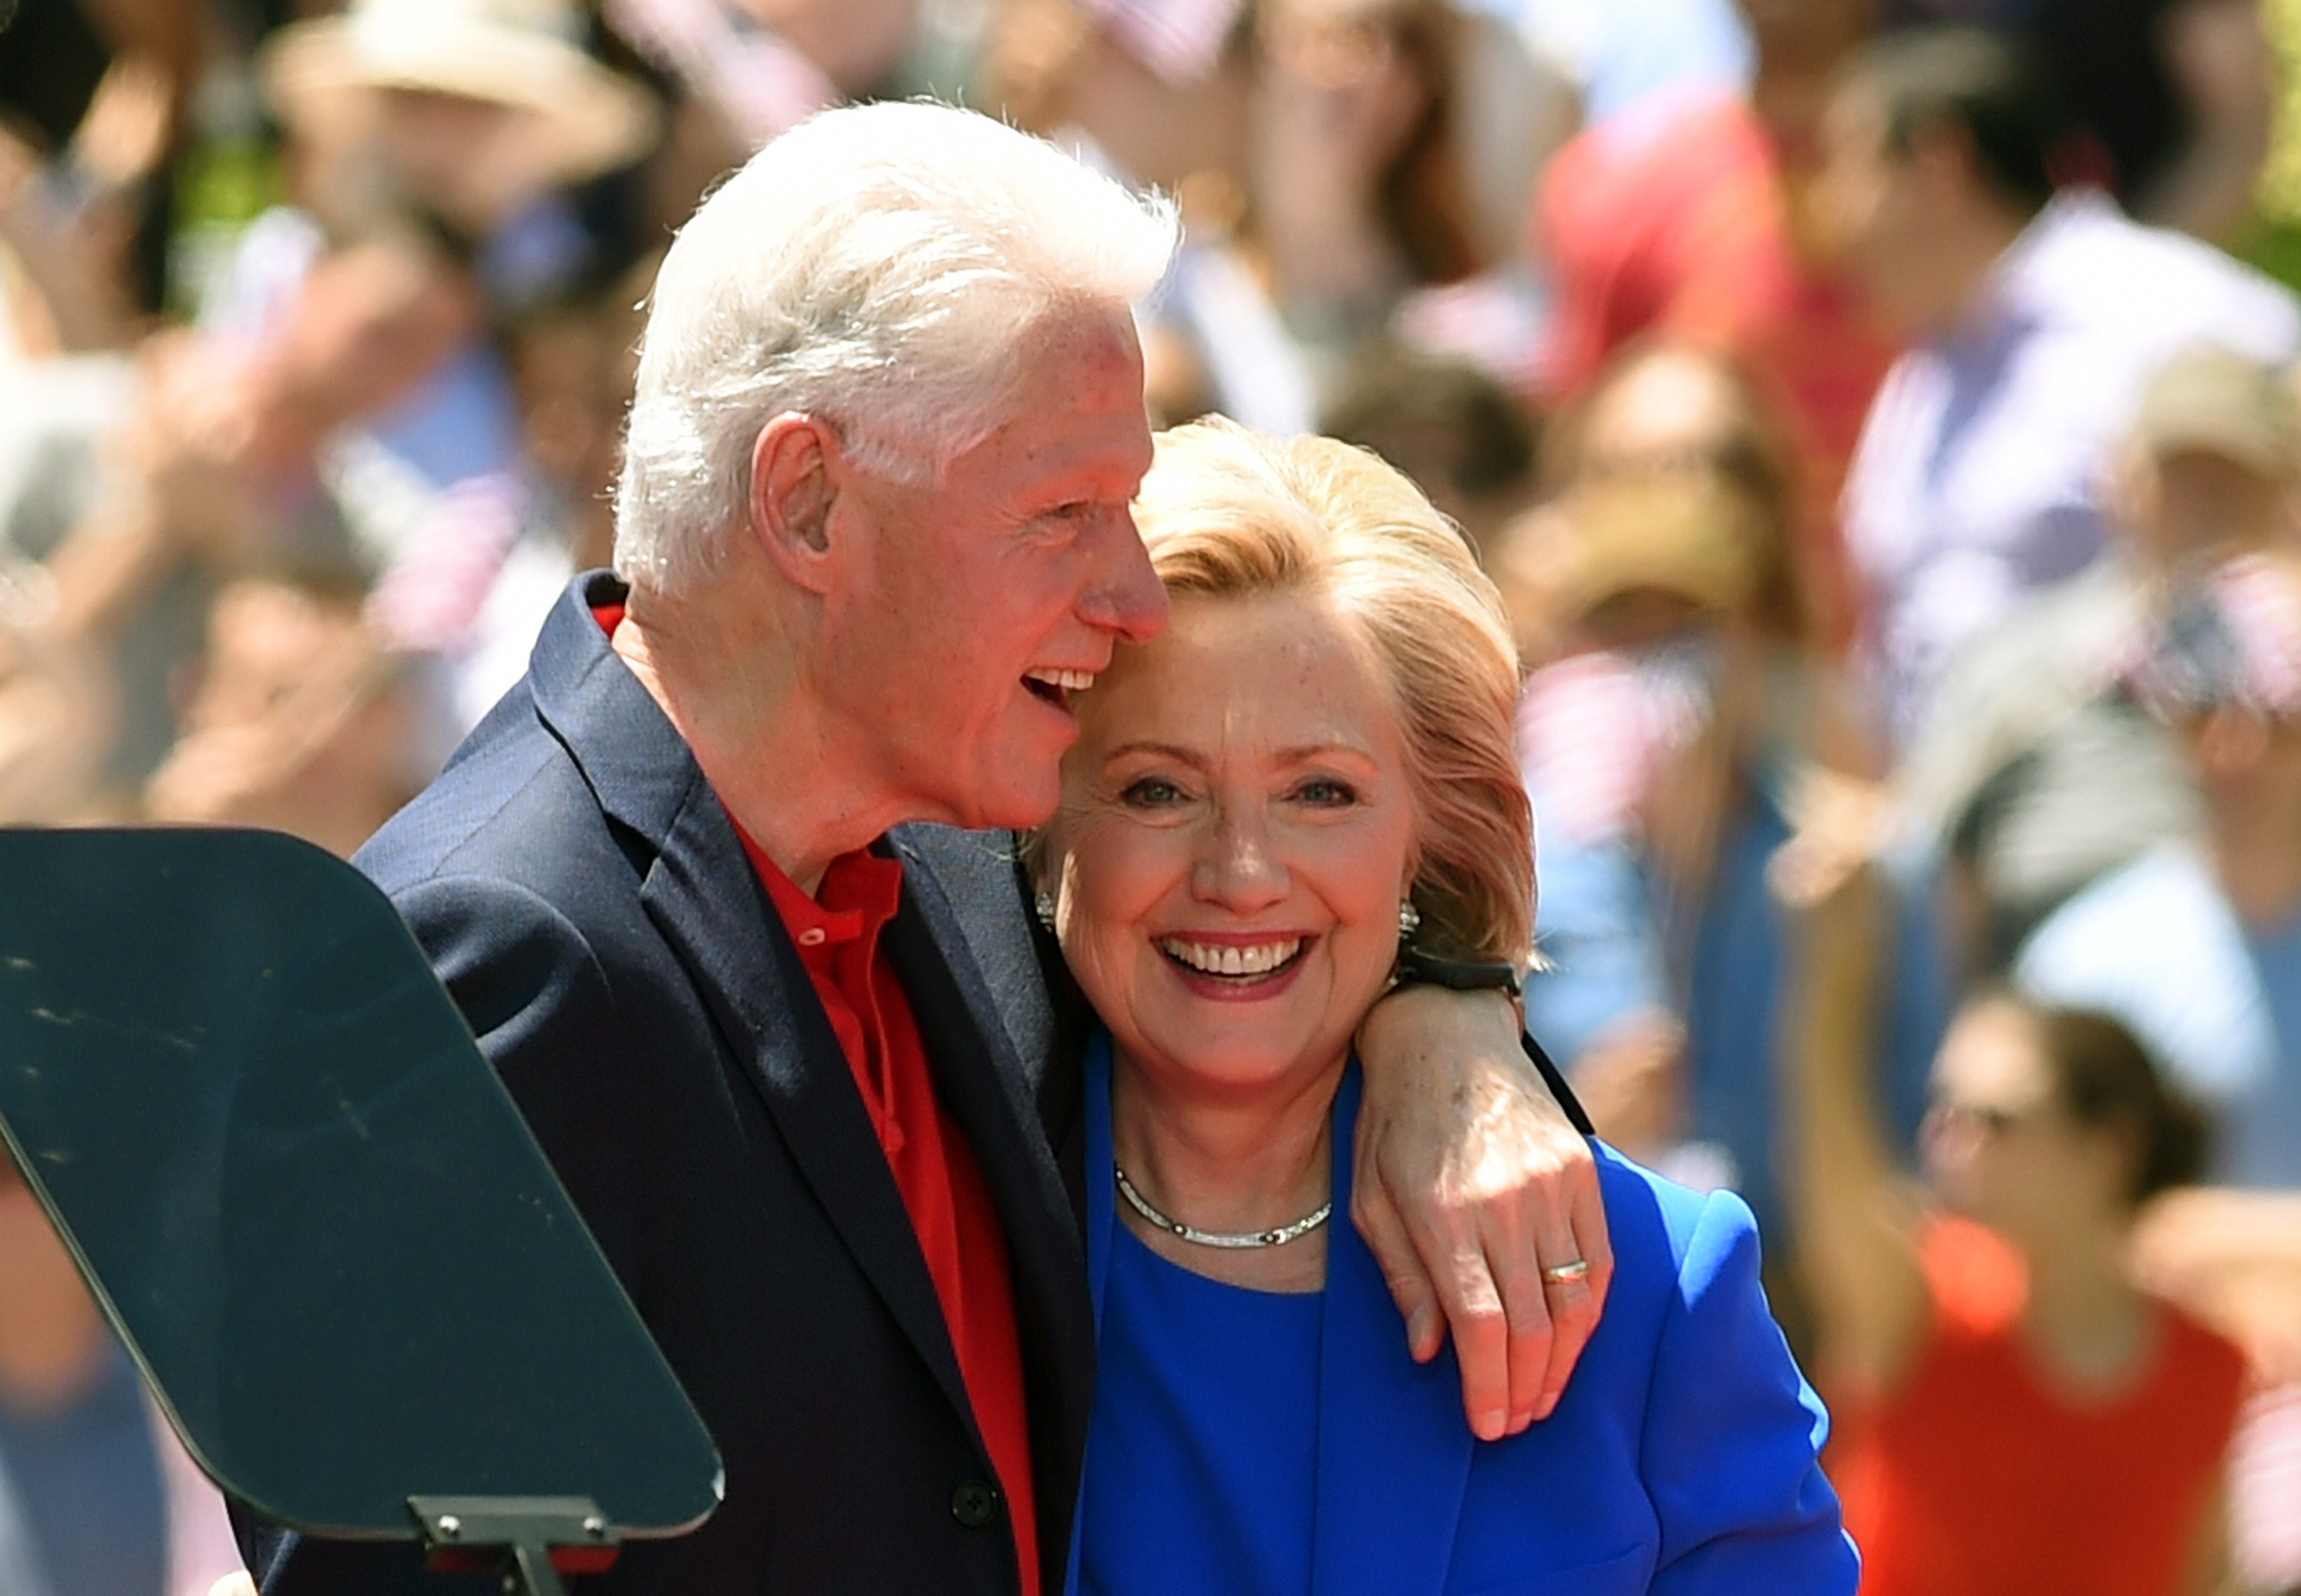 Former Secretary of State Hillary Clinton and Former US President Bill Clinton hug after she officially launched her campaign for the Democratic presidential nomination during a speech at the Franklin D. Roosevelt Four Freedoms Park on Roosevelt Island in New York, June 13, 2015 .